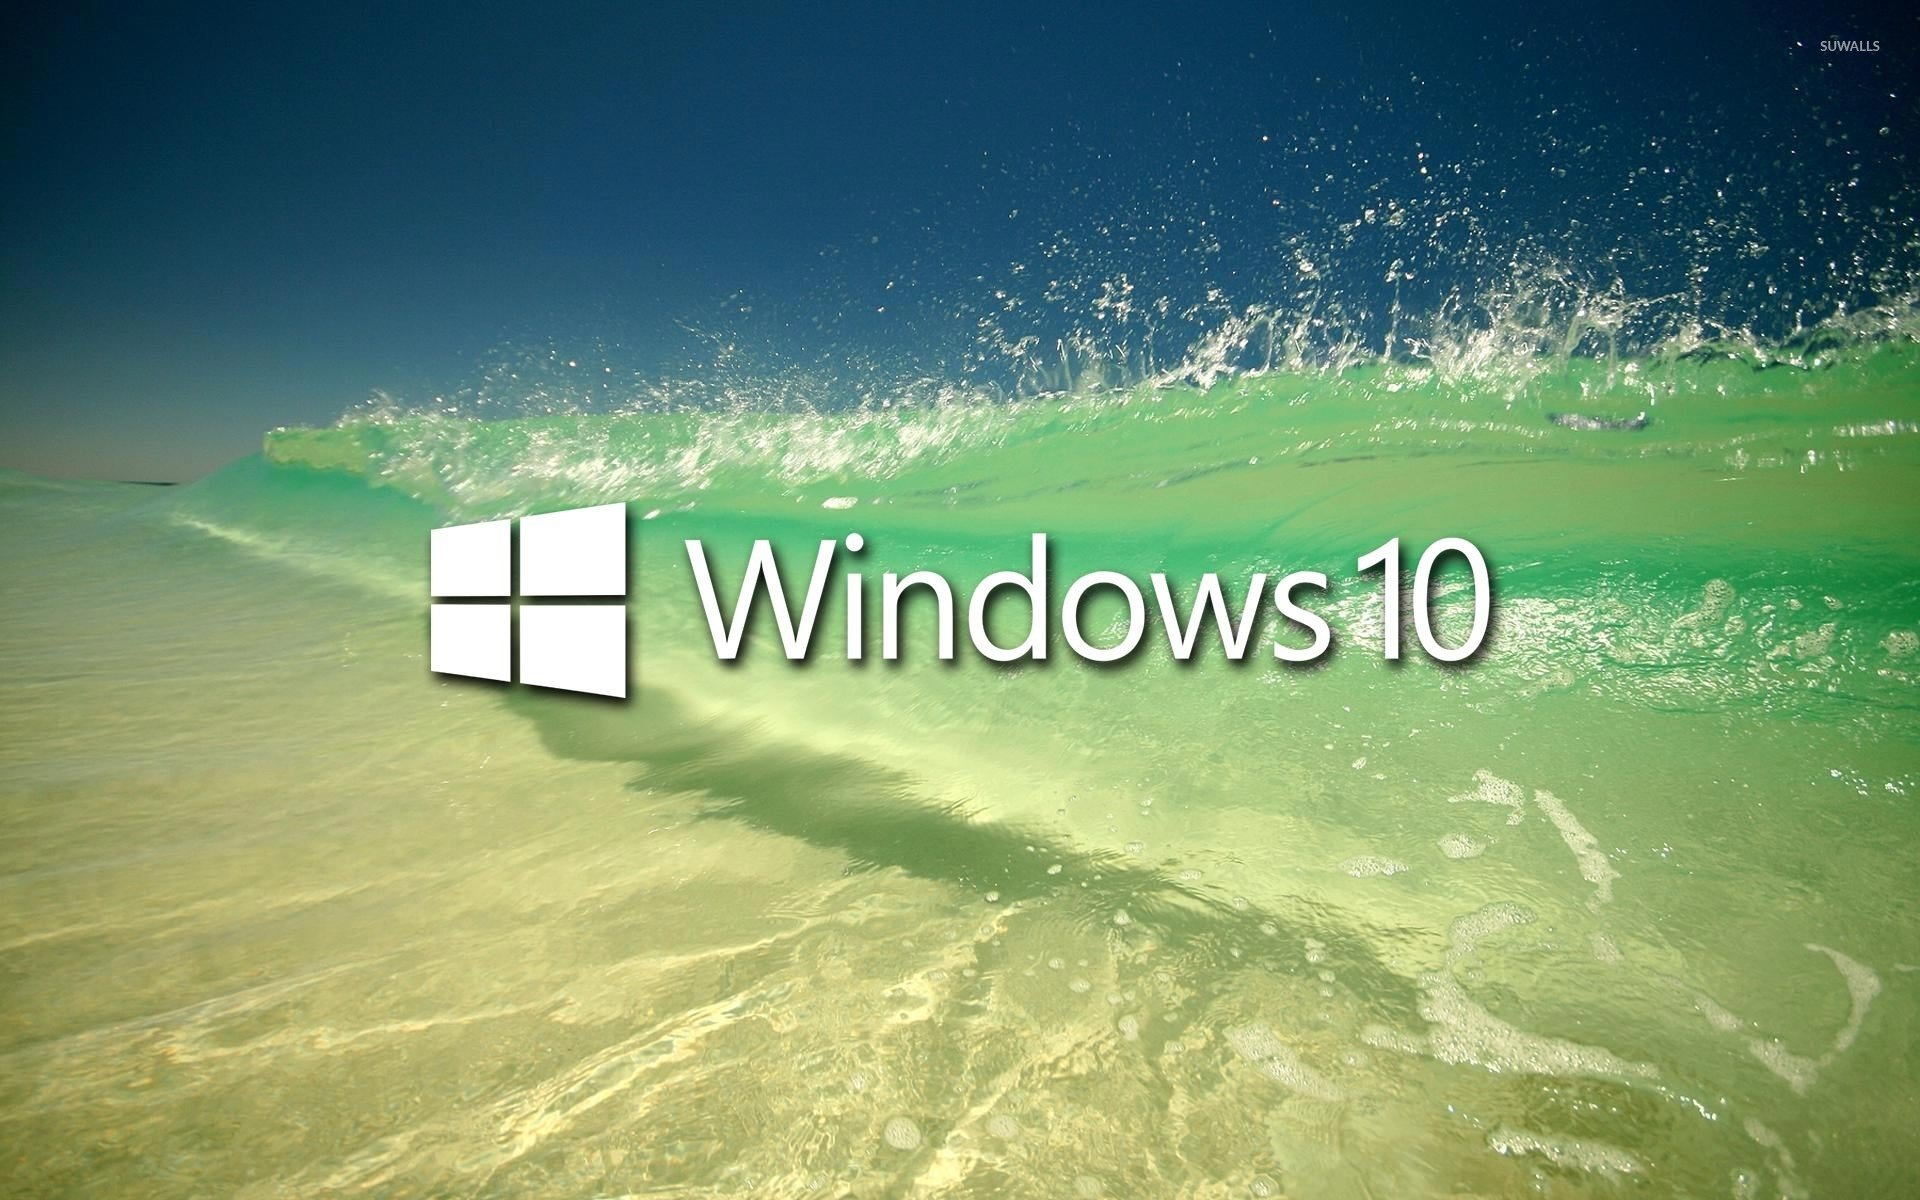 Windows 10 on a clear wave wallpaper   Computer wallpapers   46884 1680x1050